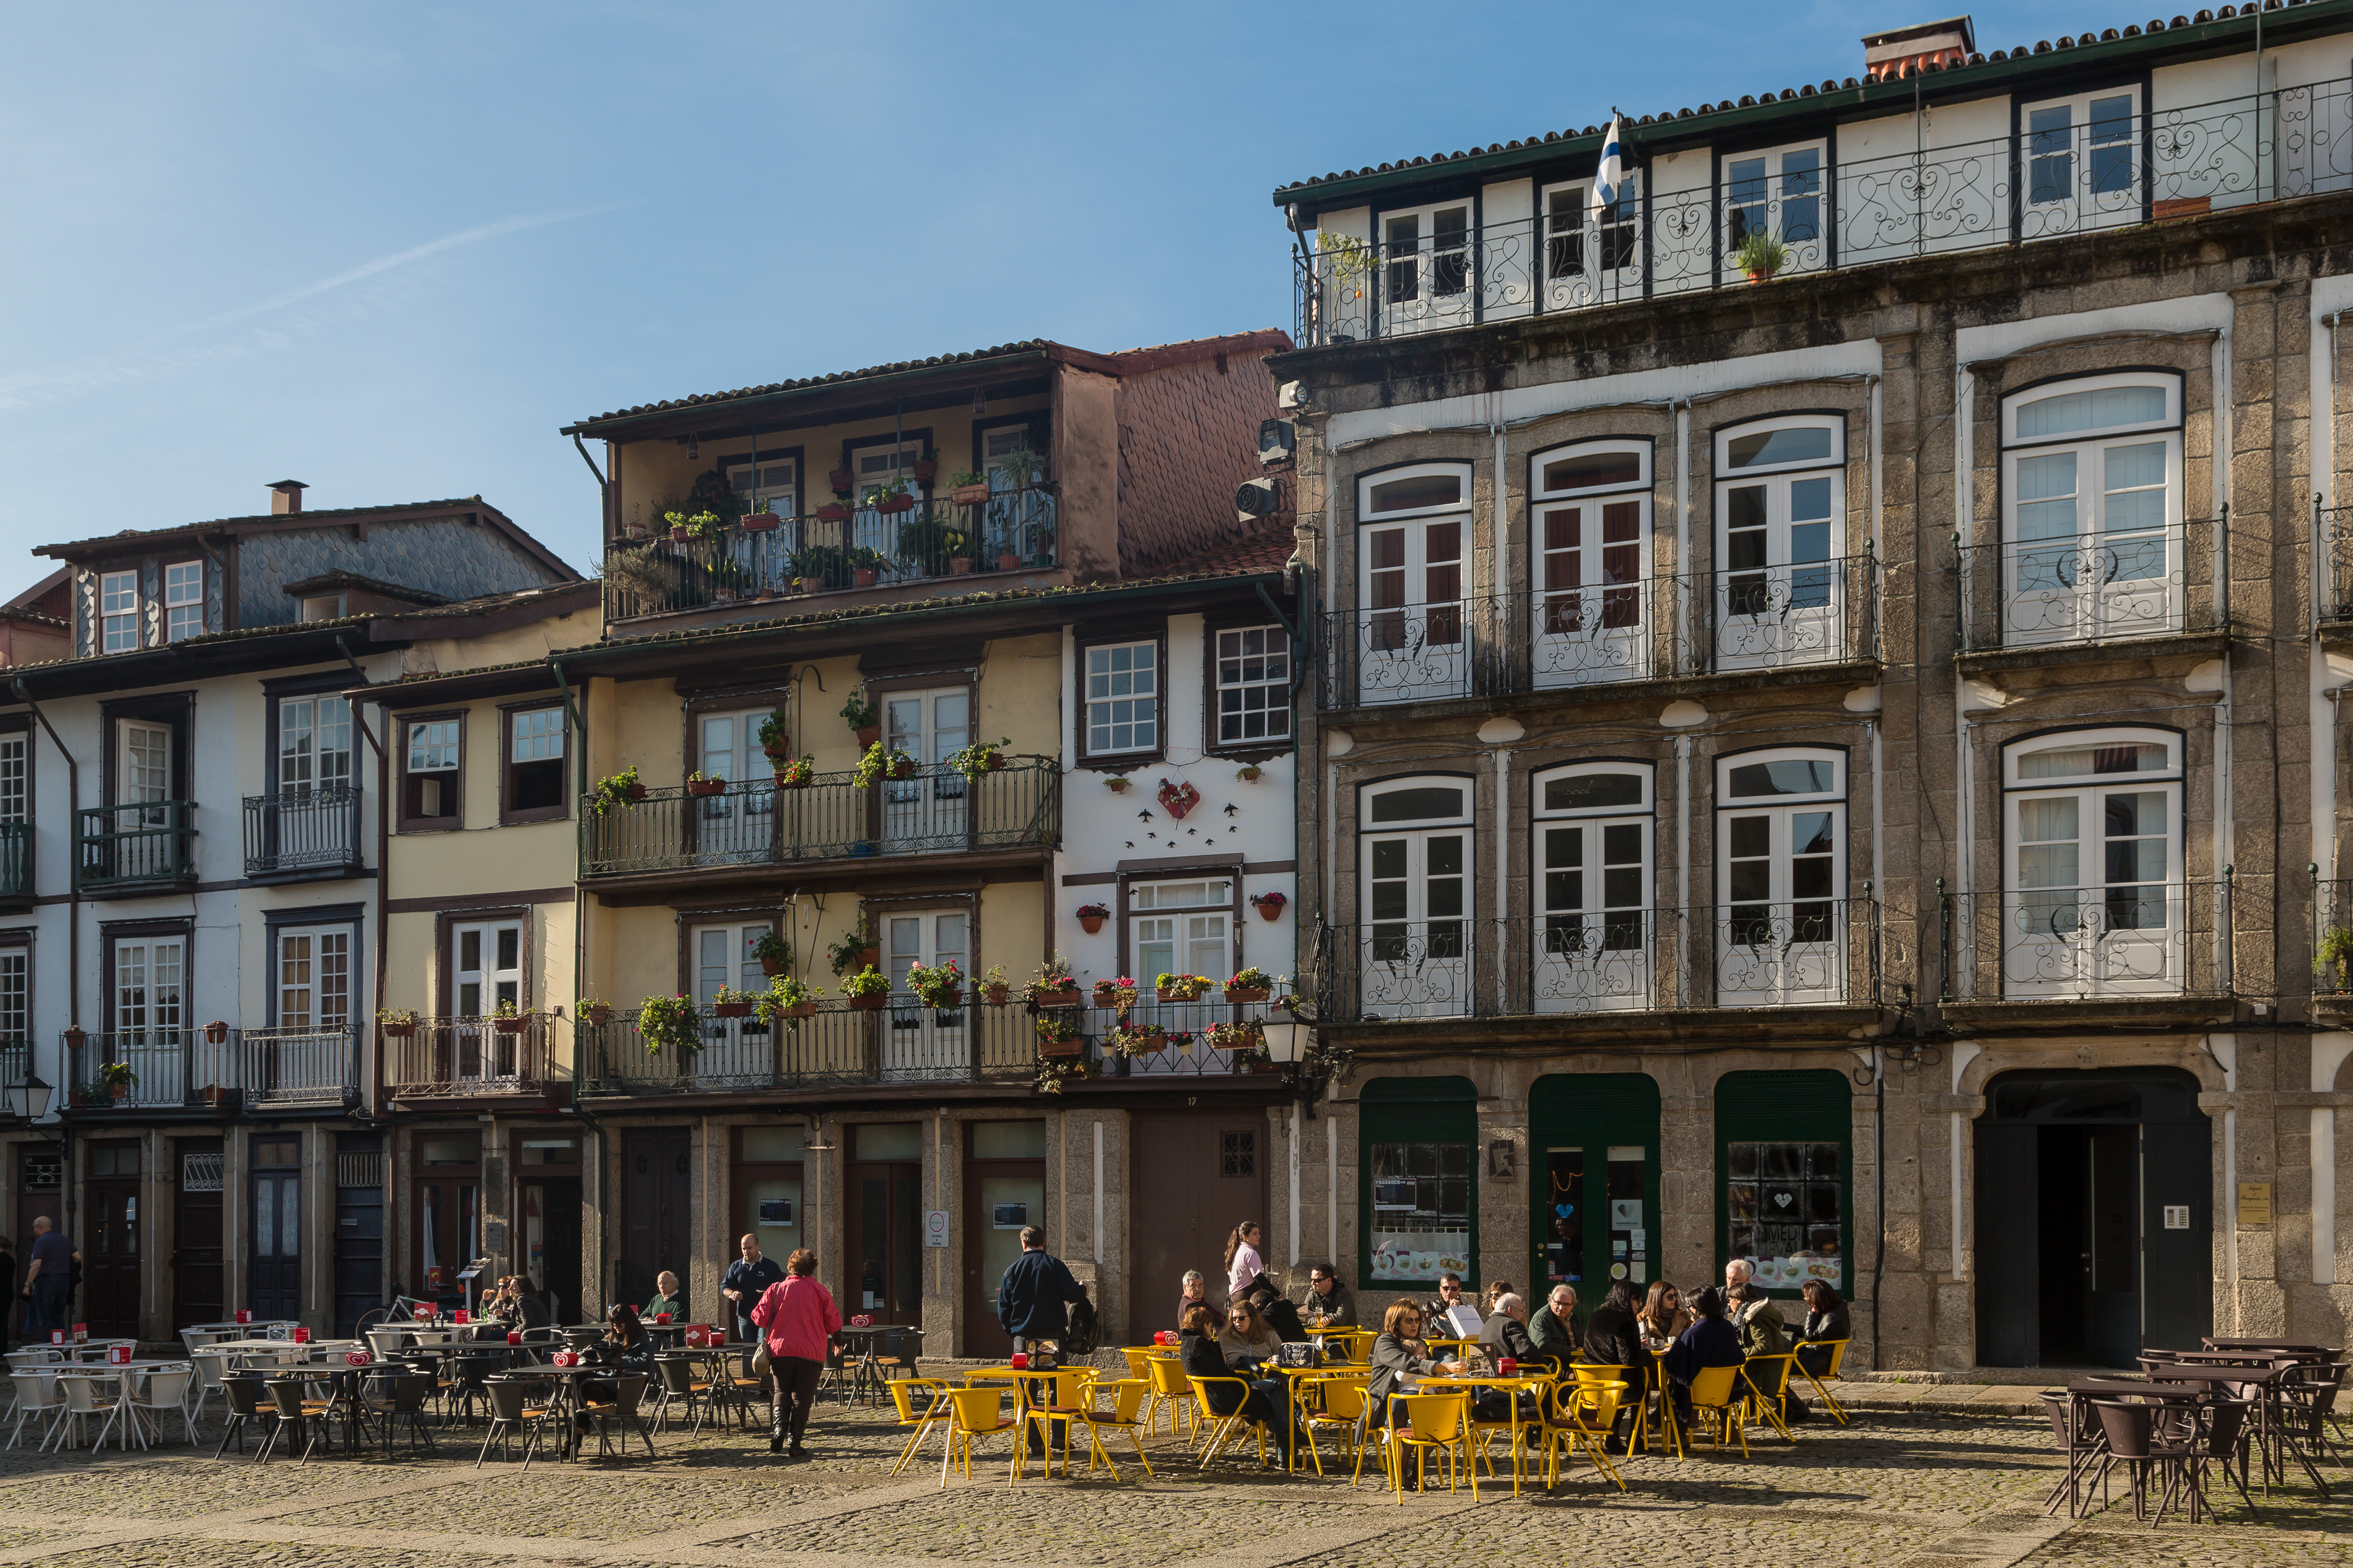 Square in Guimarães, Portugal. Source: Wikimedia Commons.